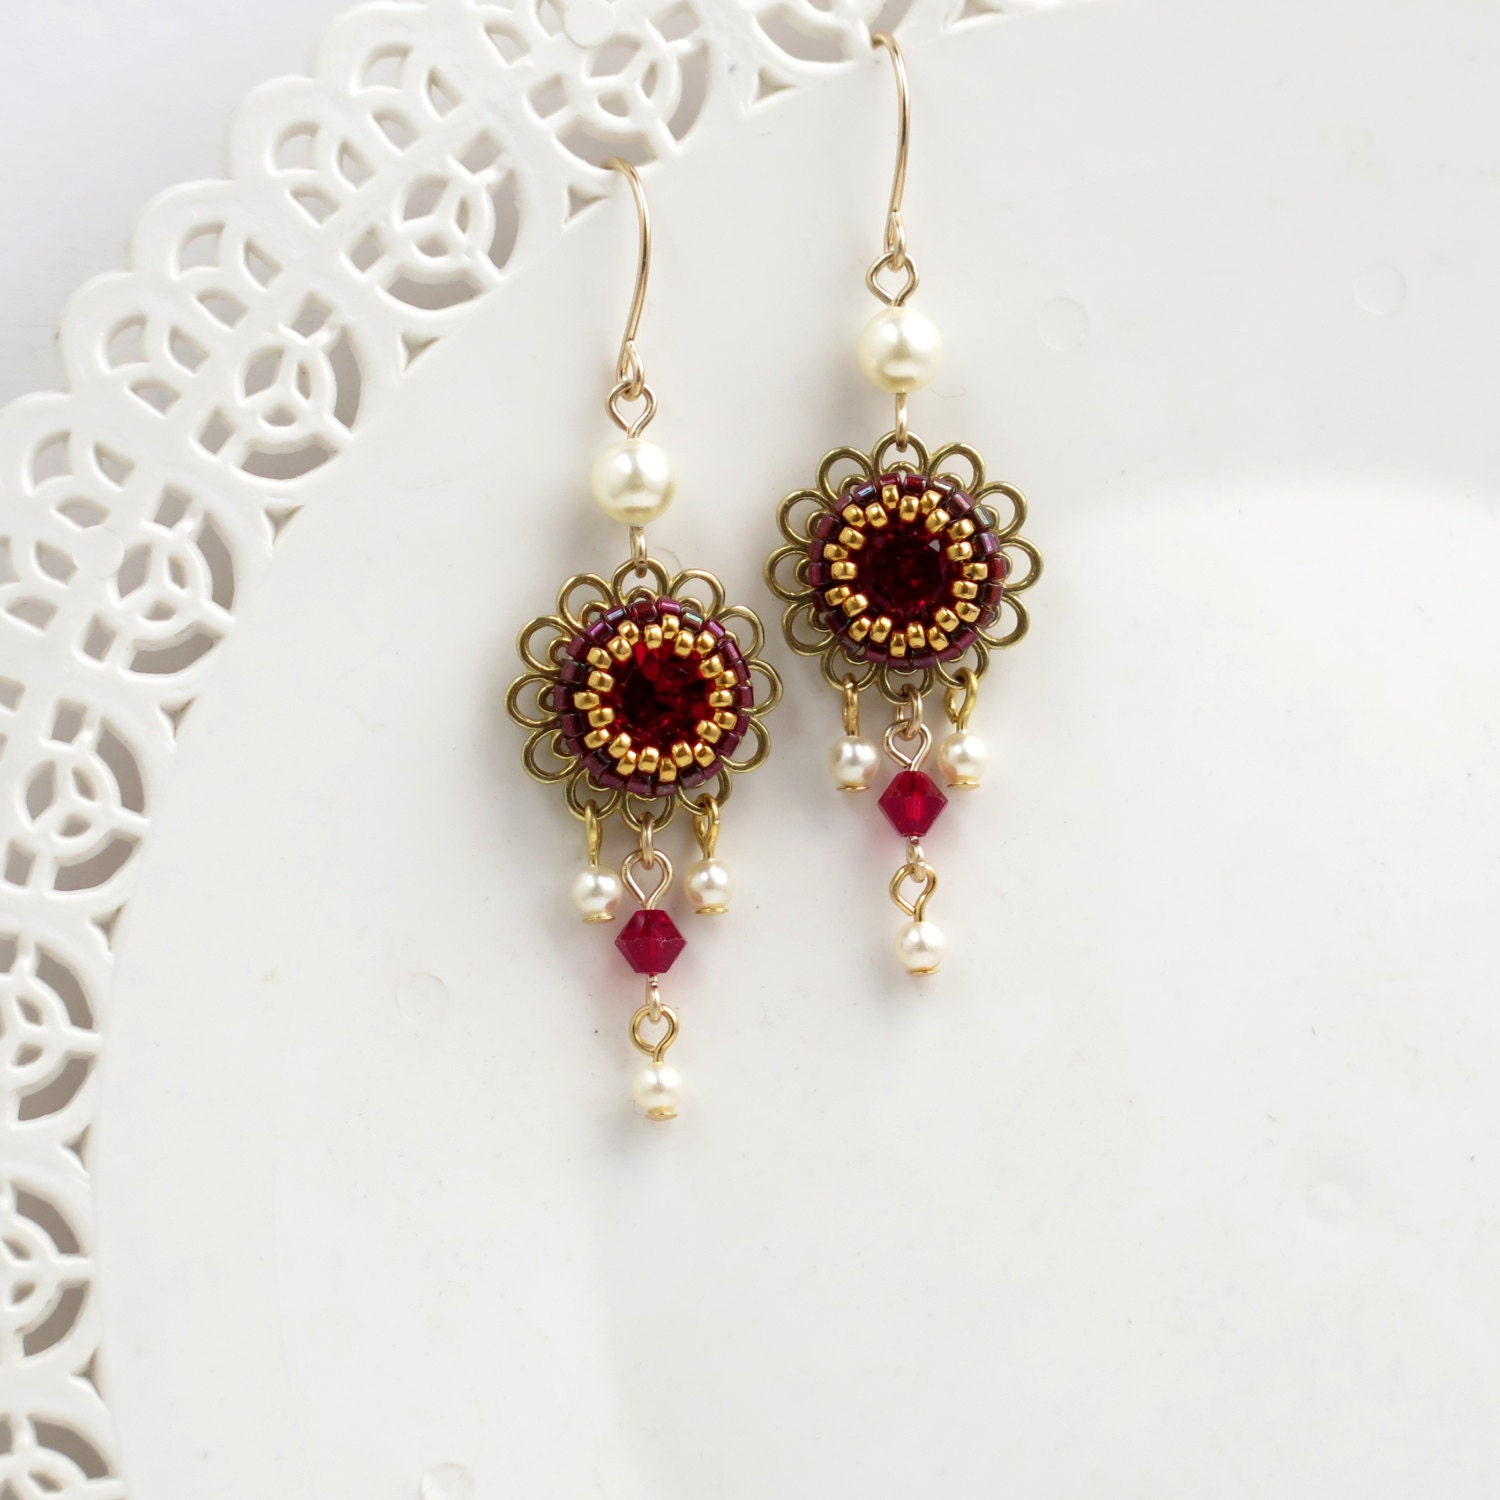 Red Chandelier Earrings: Red Chandelier Earrings Vintage Style Earrings Gift For